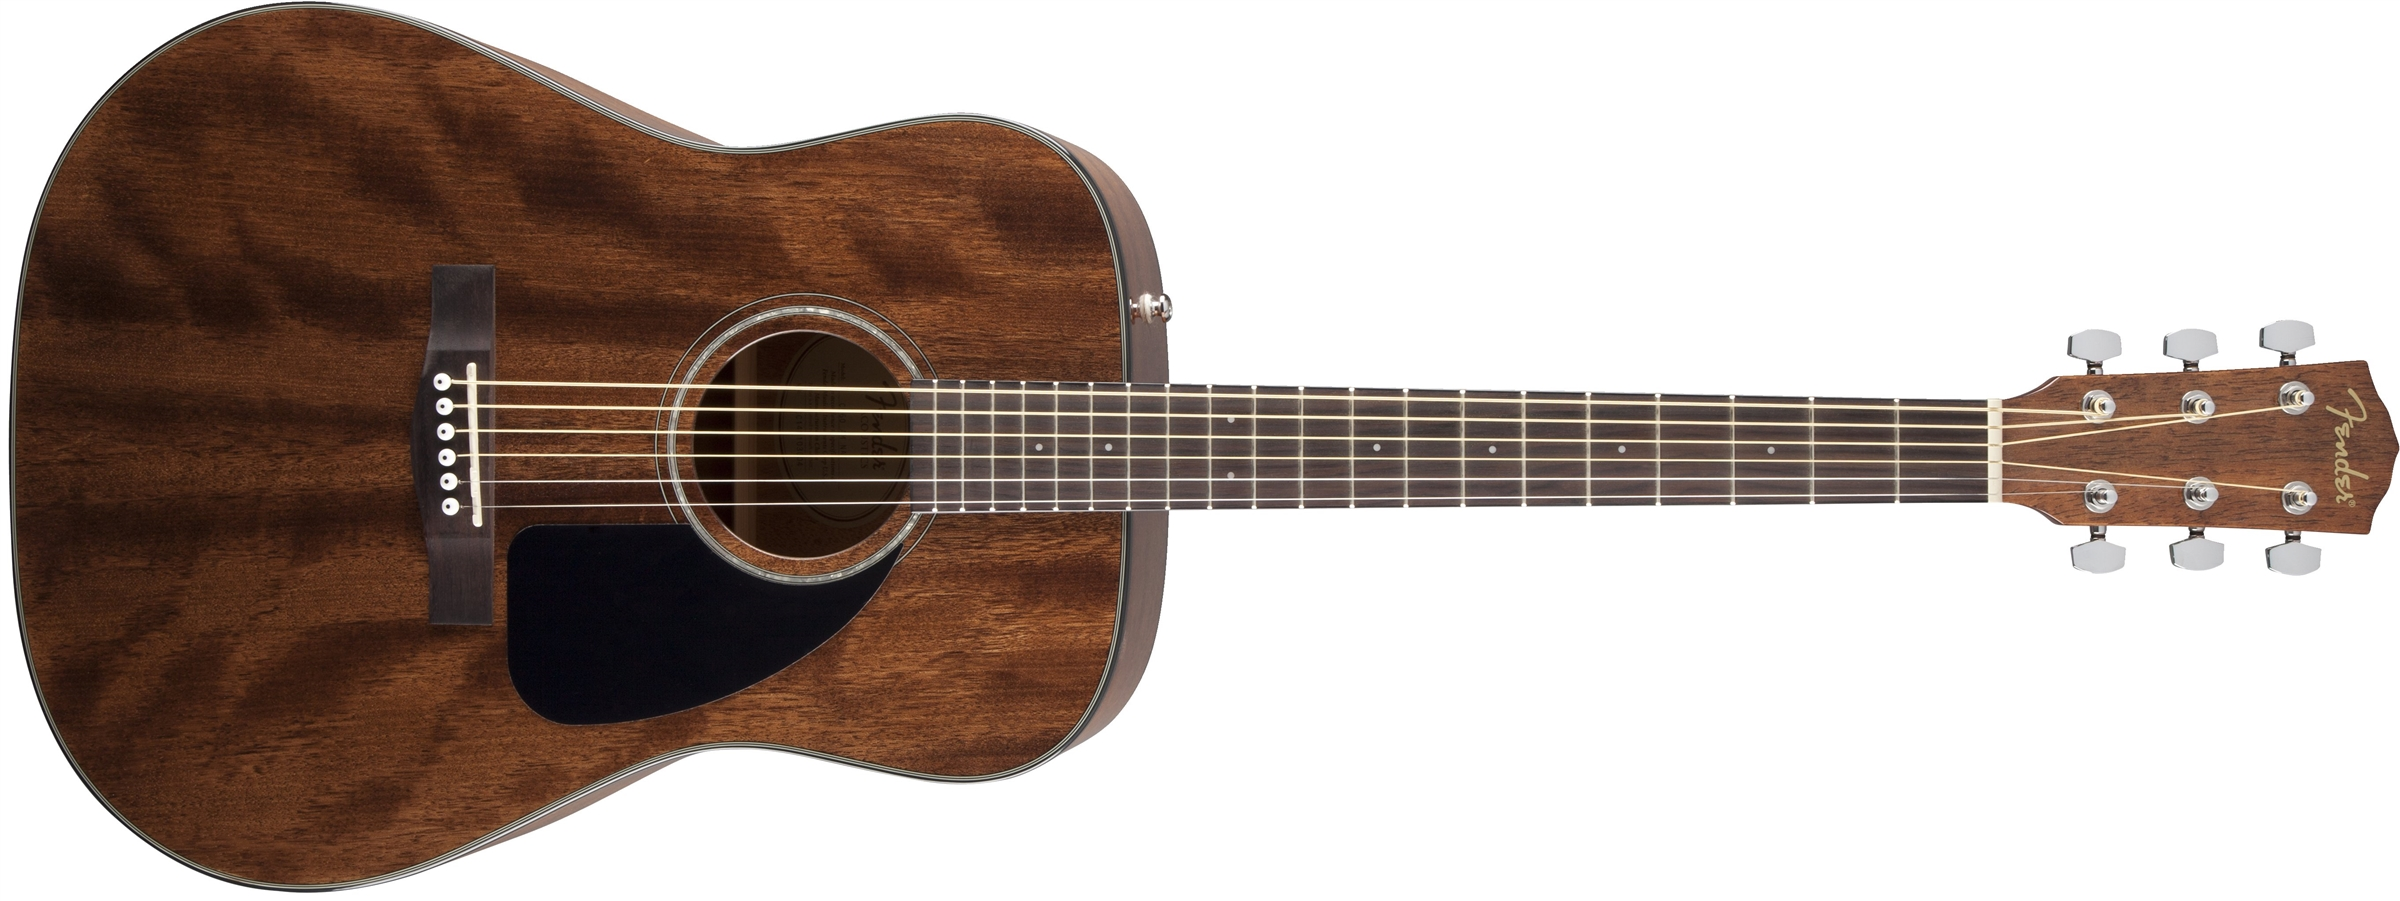 65ace61129c CD-60 All Mahogany with Case | Acoustic Guitars